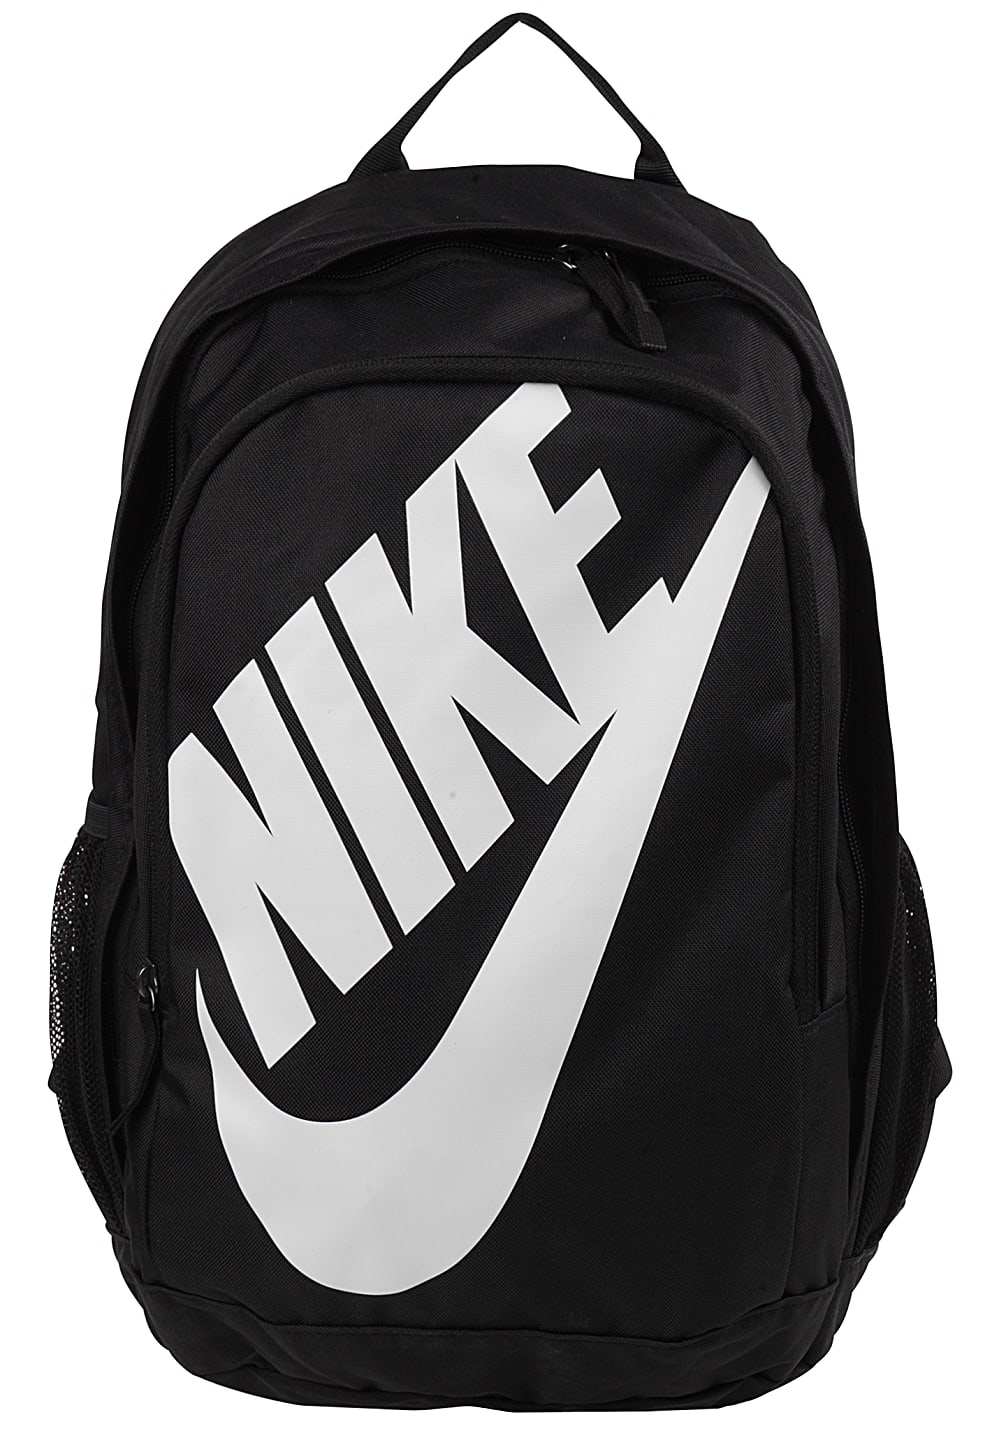 marken rucks cke auf rechnung bestellen nike sportswear hayward futura solid rucksack schwarz. Black Bedroom Furniture Sets. Home Design Ideas